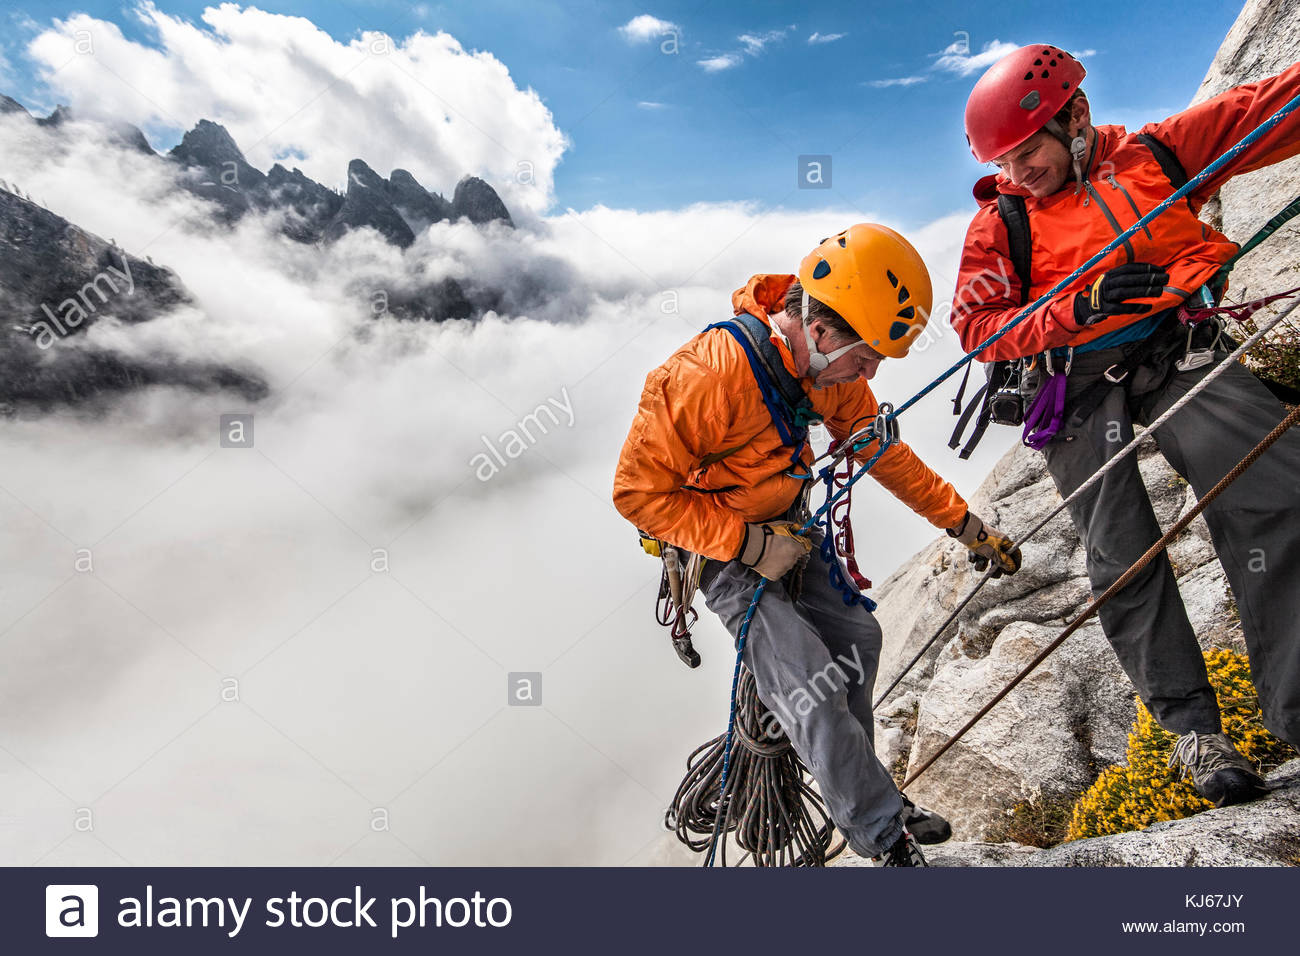 Climbers trying reaching the top, cloudy peaks background - Stock Image